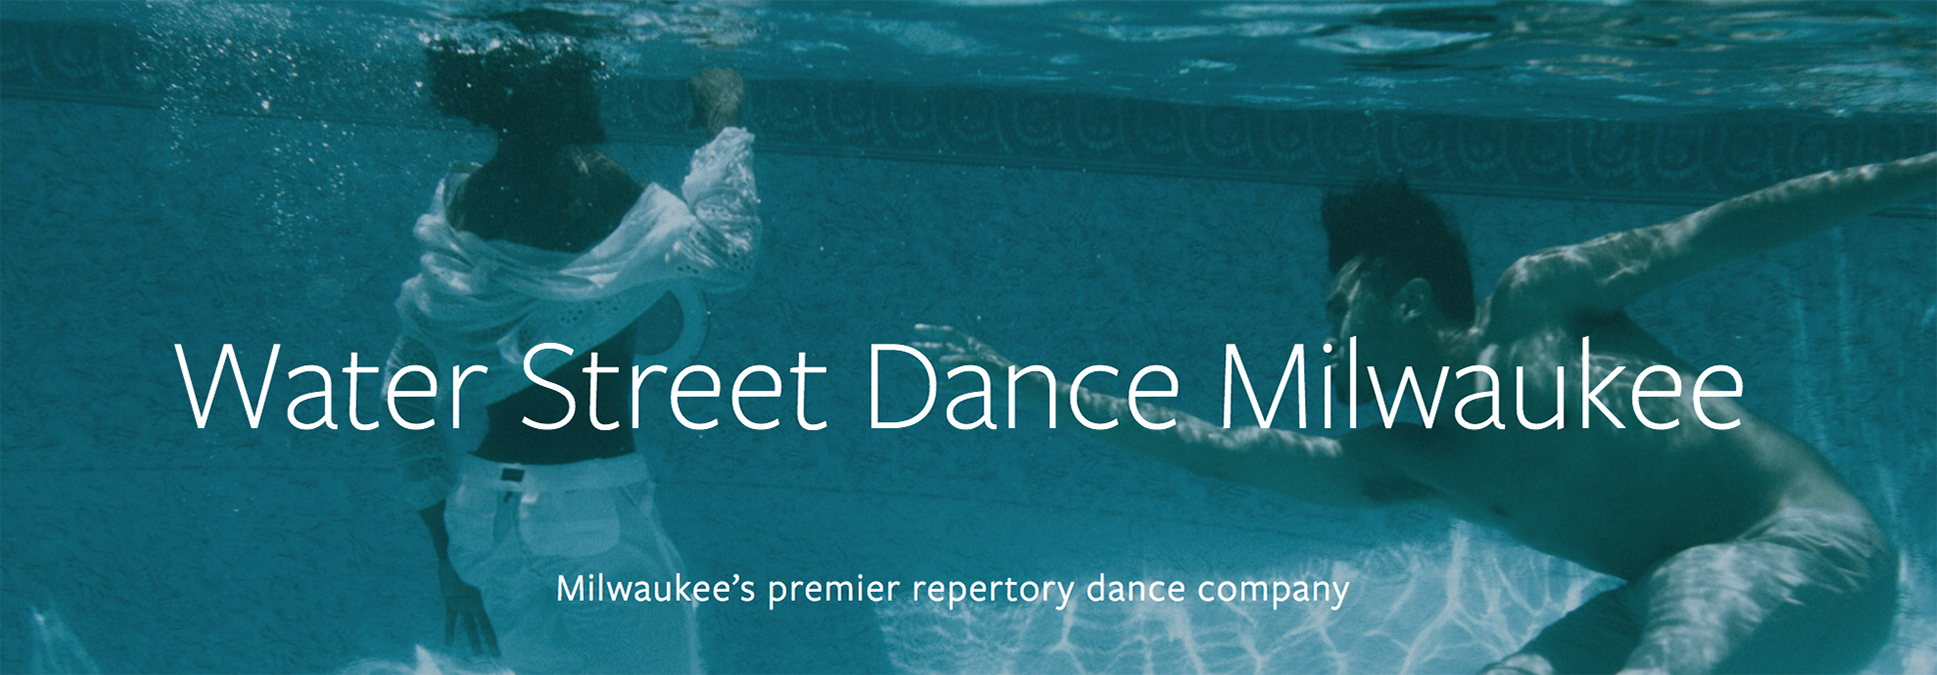 Water Street Dance Kidz Days at the Marcus Center in Milwaukee